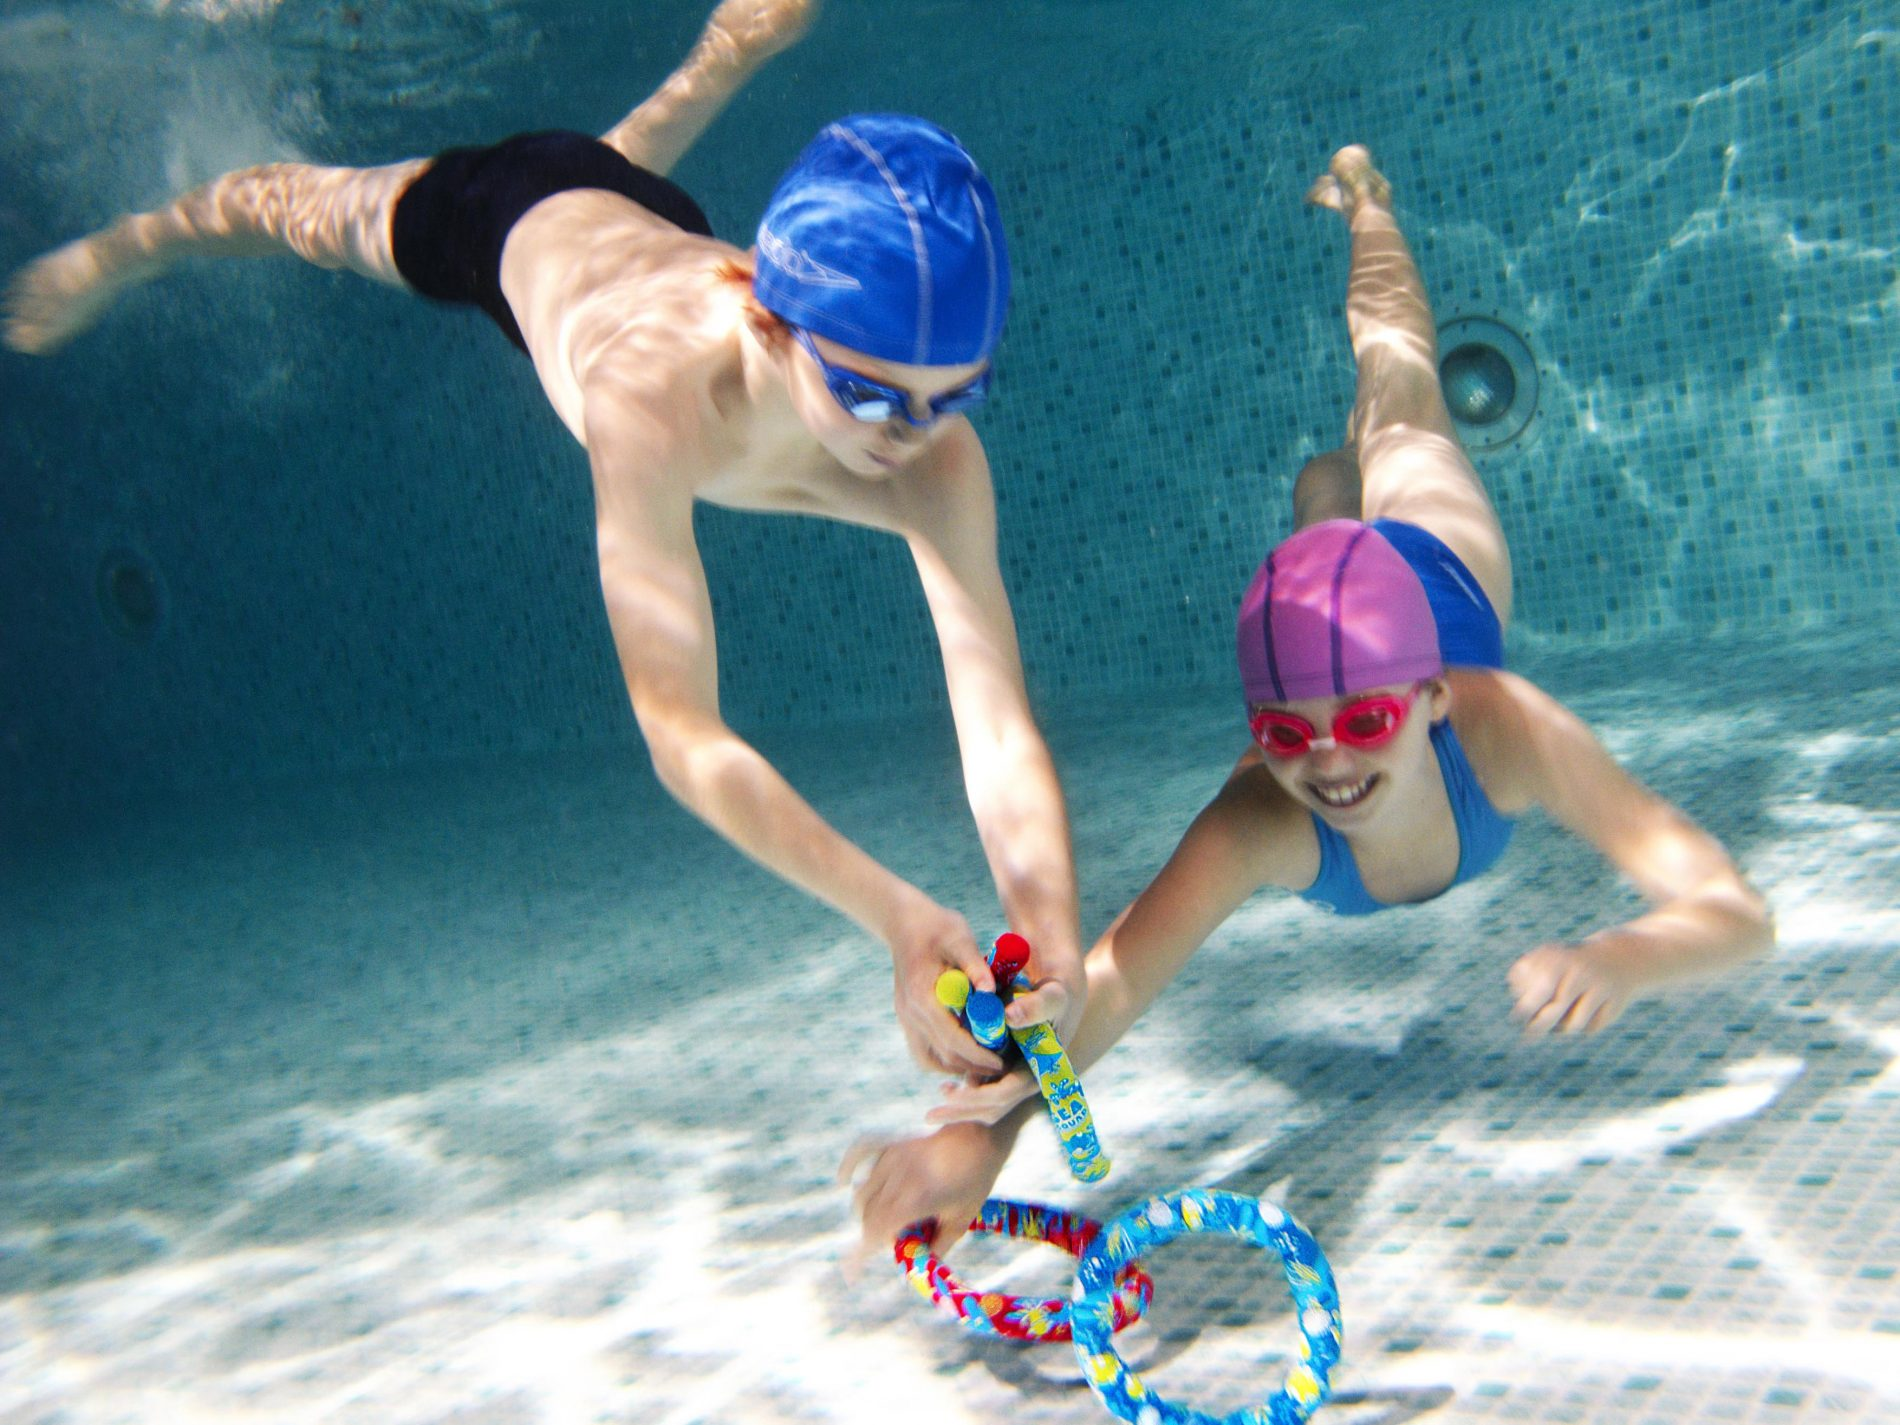 Swimming games to help kids feel safe in water